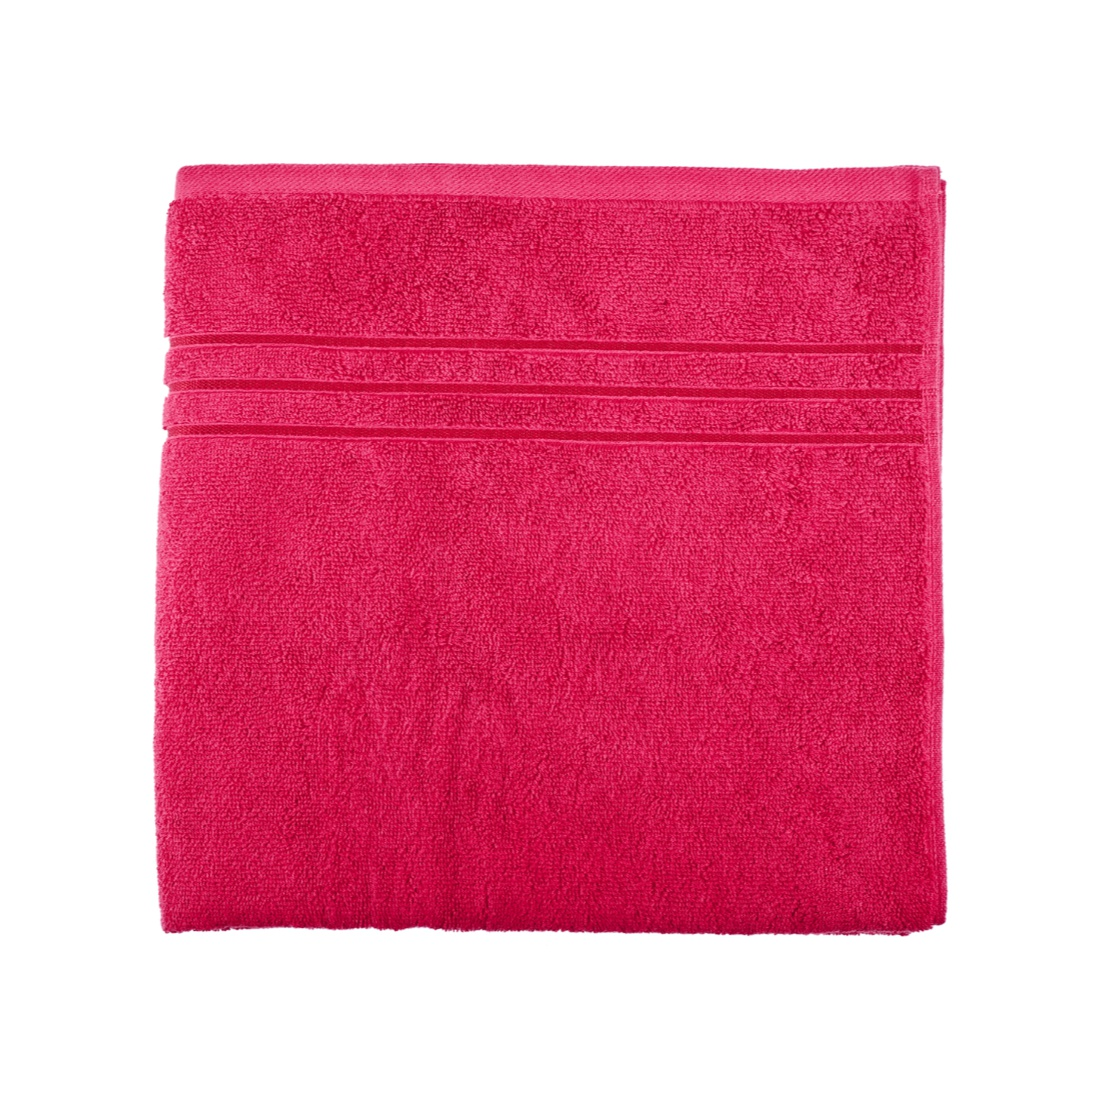 Bath Towel 70X140 Nora Shell Combed Cotton Bath Towels in Shell Colour by Living Essence